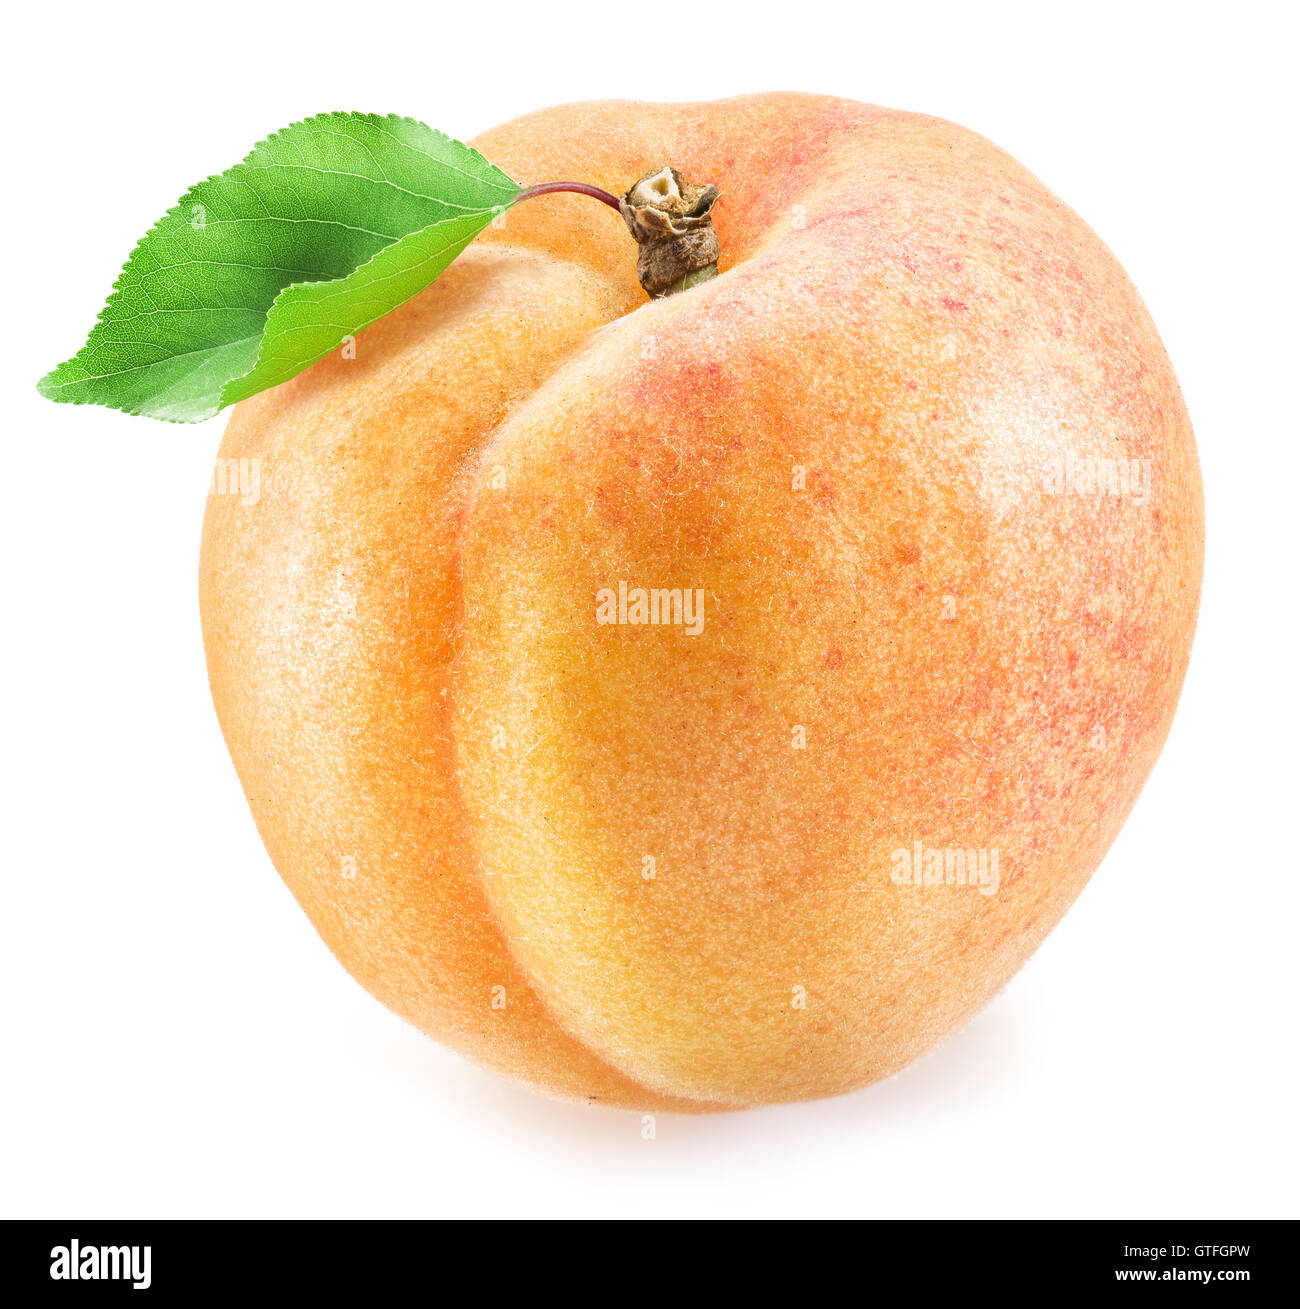 Ripe apricot fruit. Clipping paths. - Stock Image